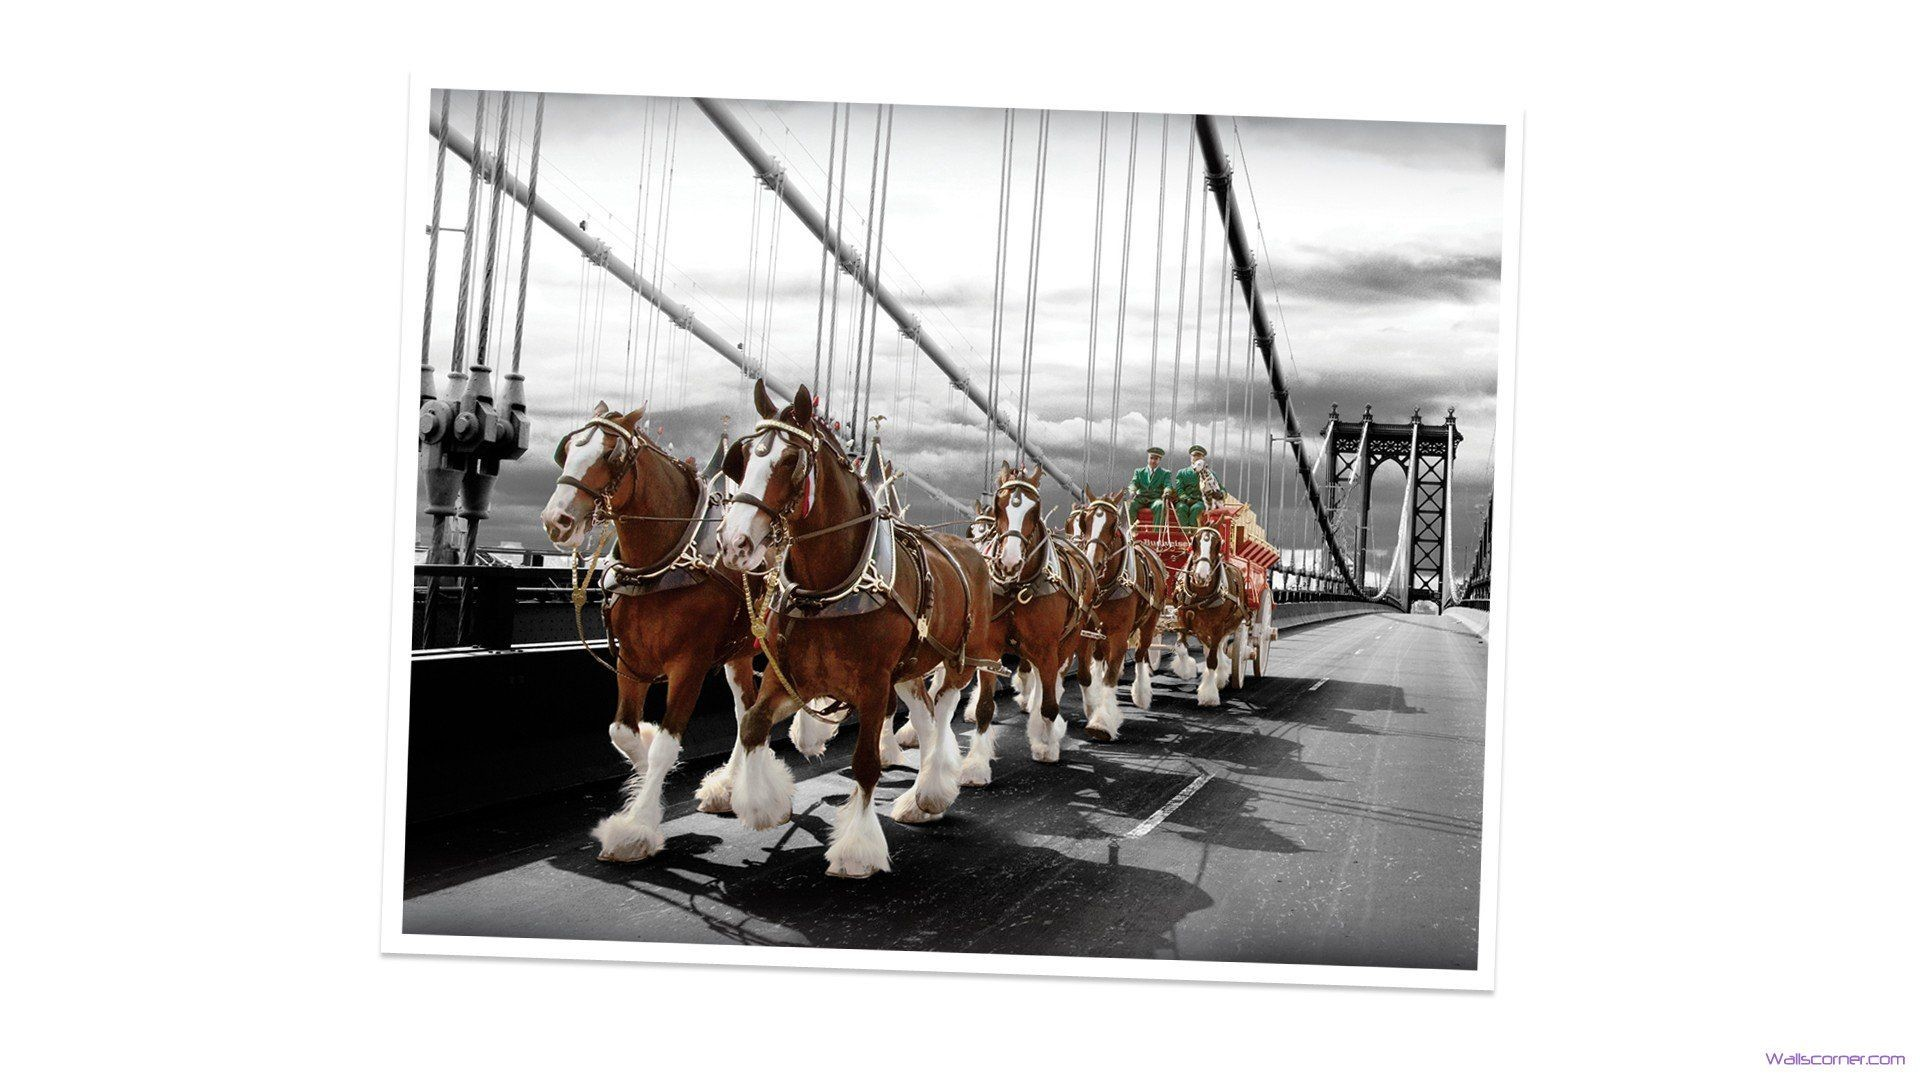 Res: 1920x1080, Budweiser Clydesdales Christmas Wallpaper | ... hd beauty budweiser  clydesdales six horse 95 hd